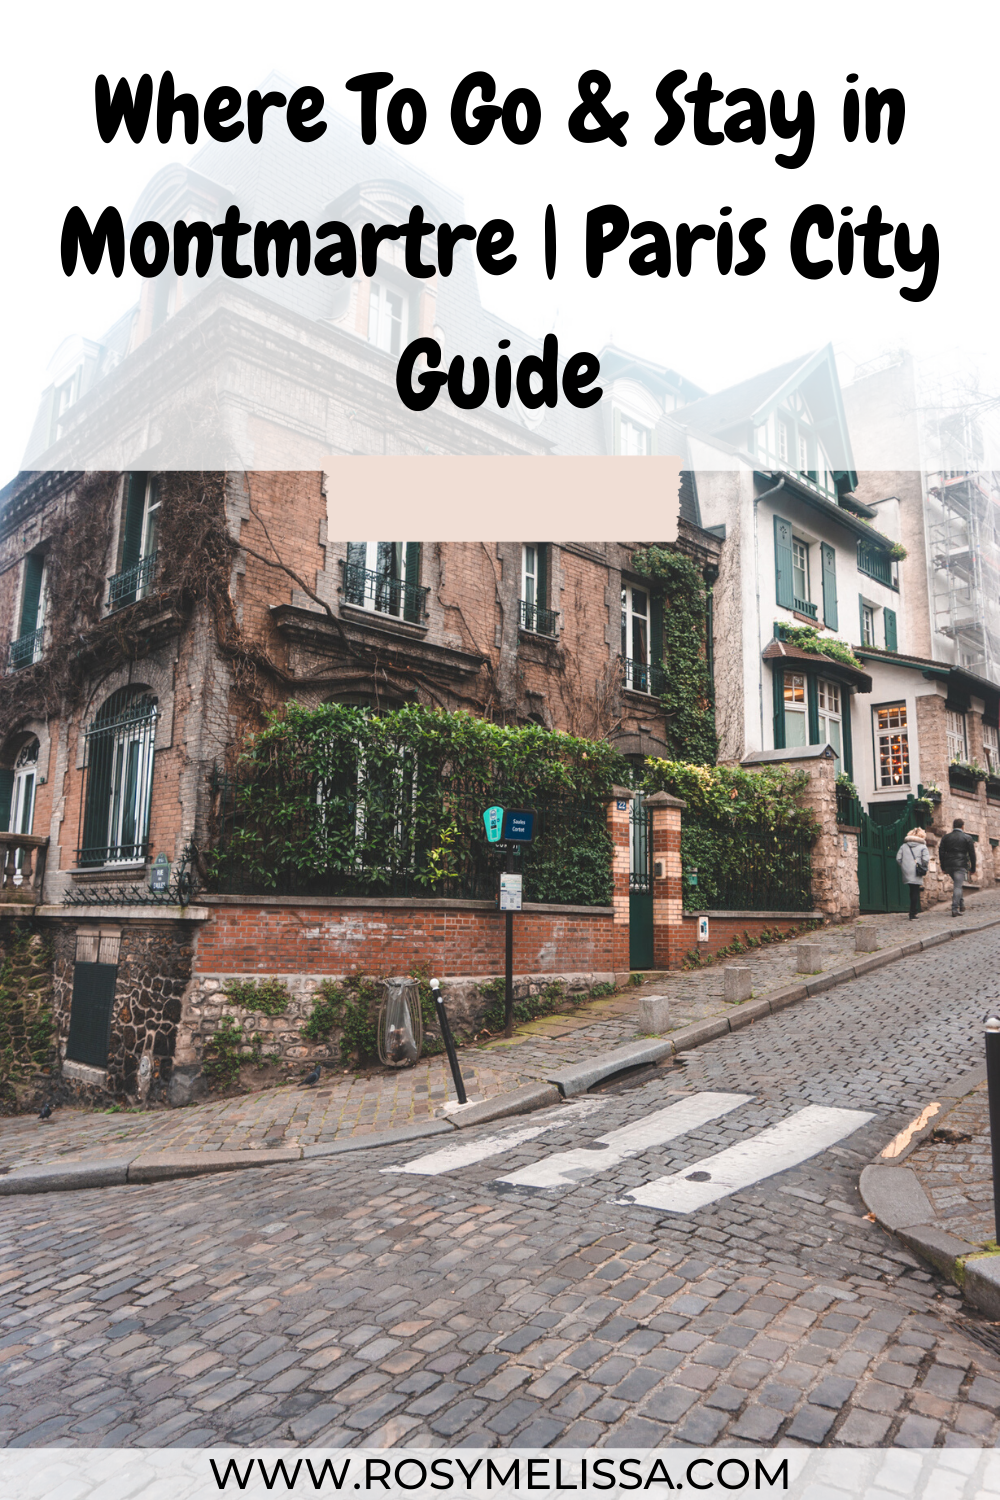 the ultimate montmartre guide, paris city guide, where to go in montmartre, where to stay in paris and montmartre, what to do in montmartre